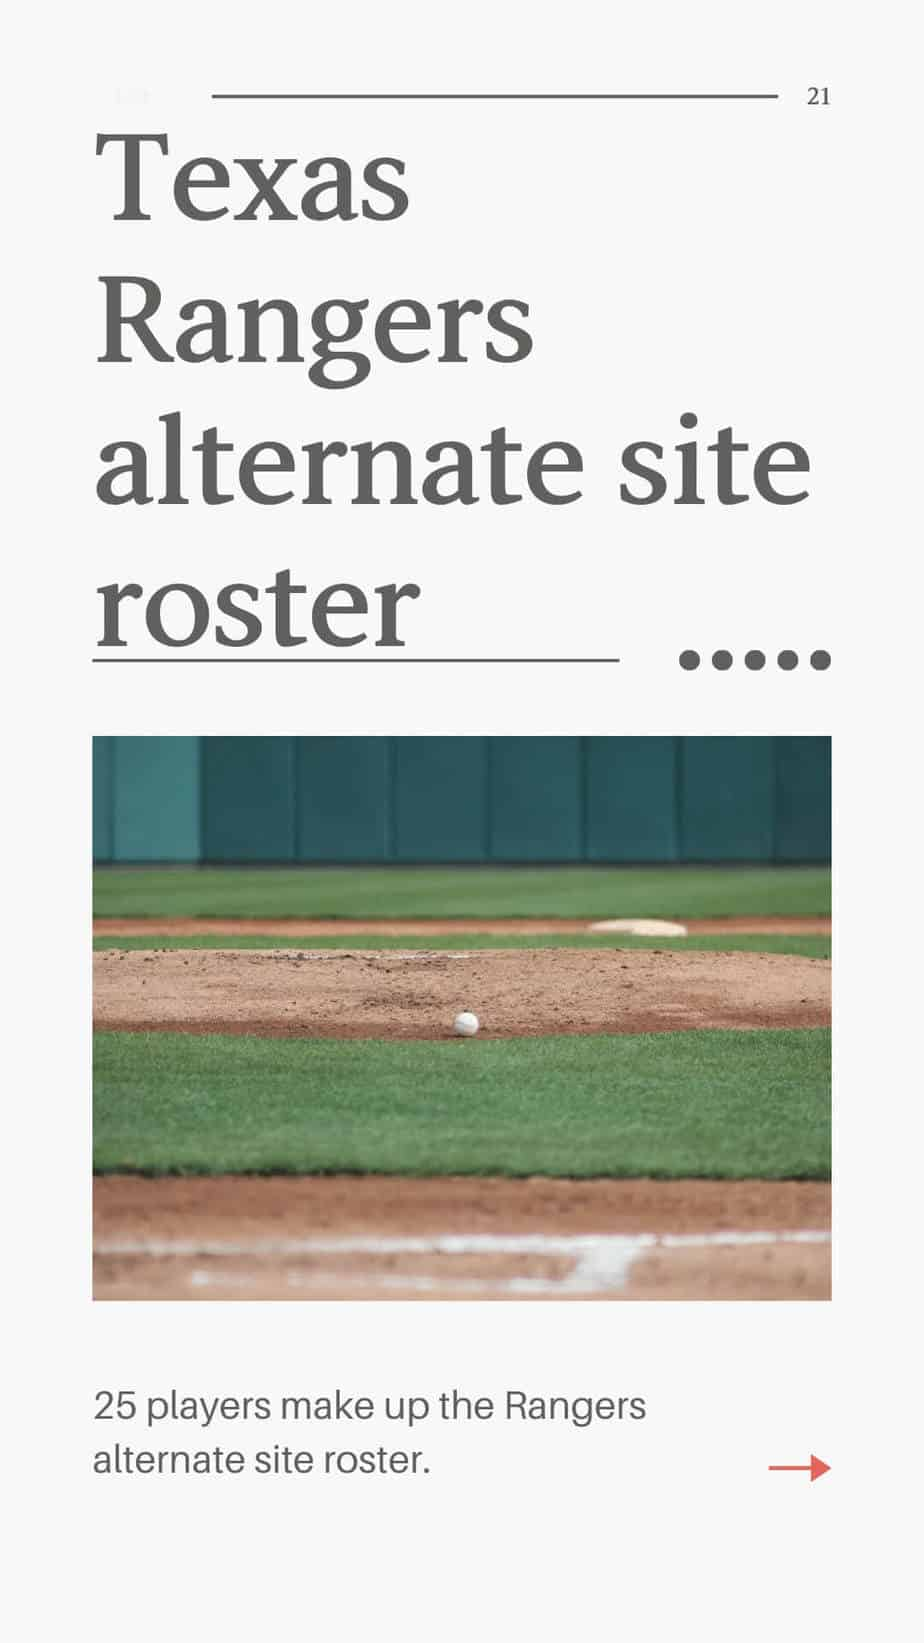 Texas Rangers alternate site roster